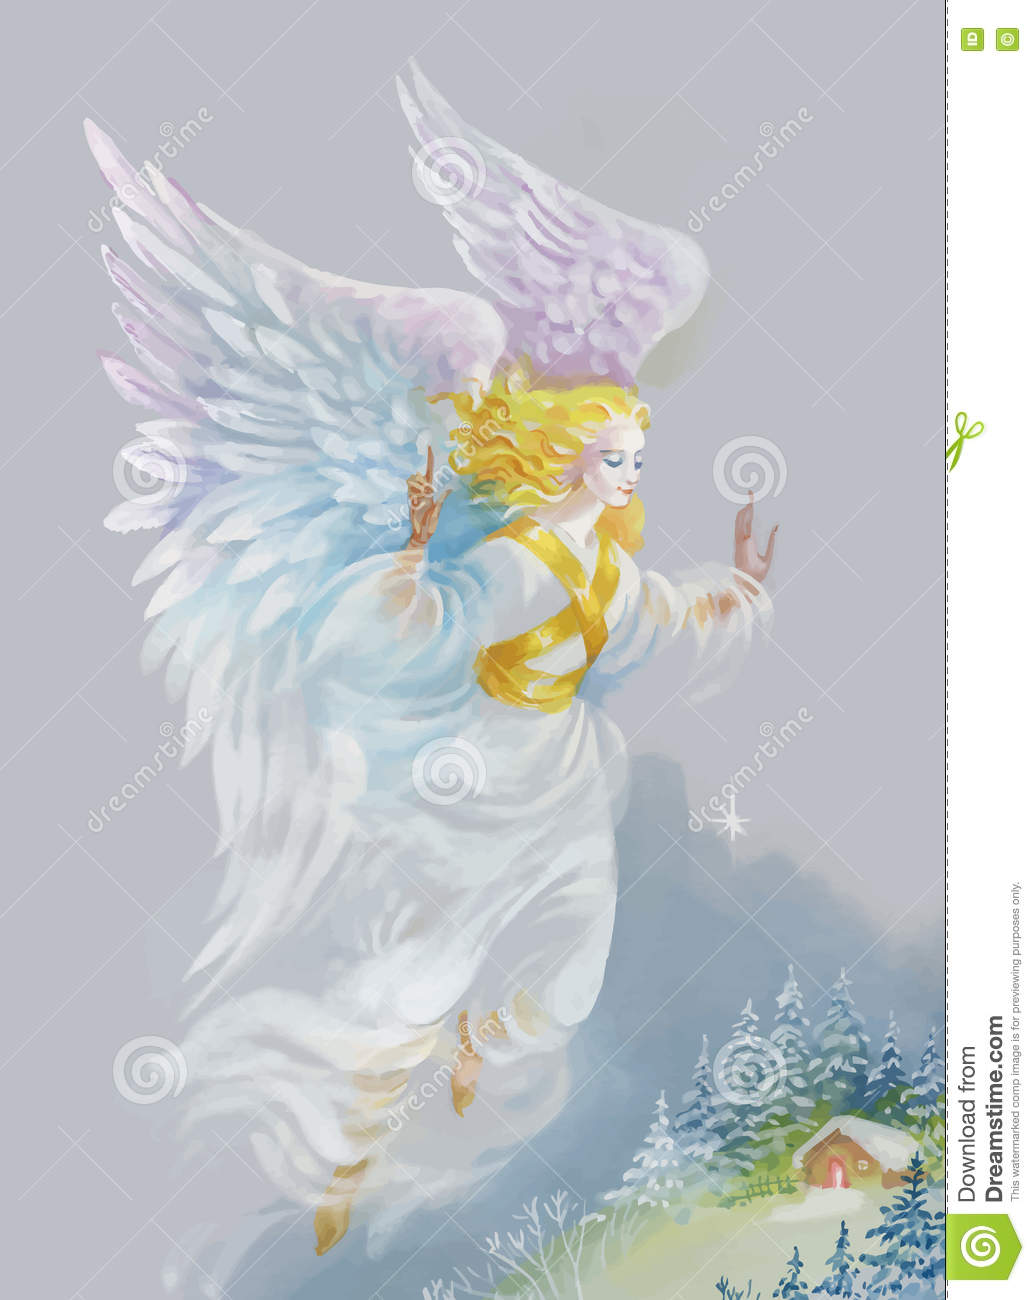 merry christmas and new year greeting card with beautiful angel with wings watercolor illustration